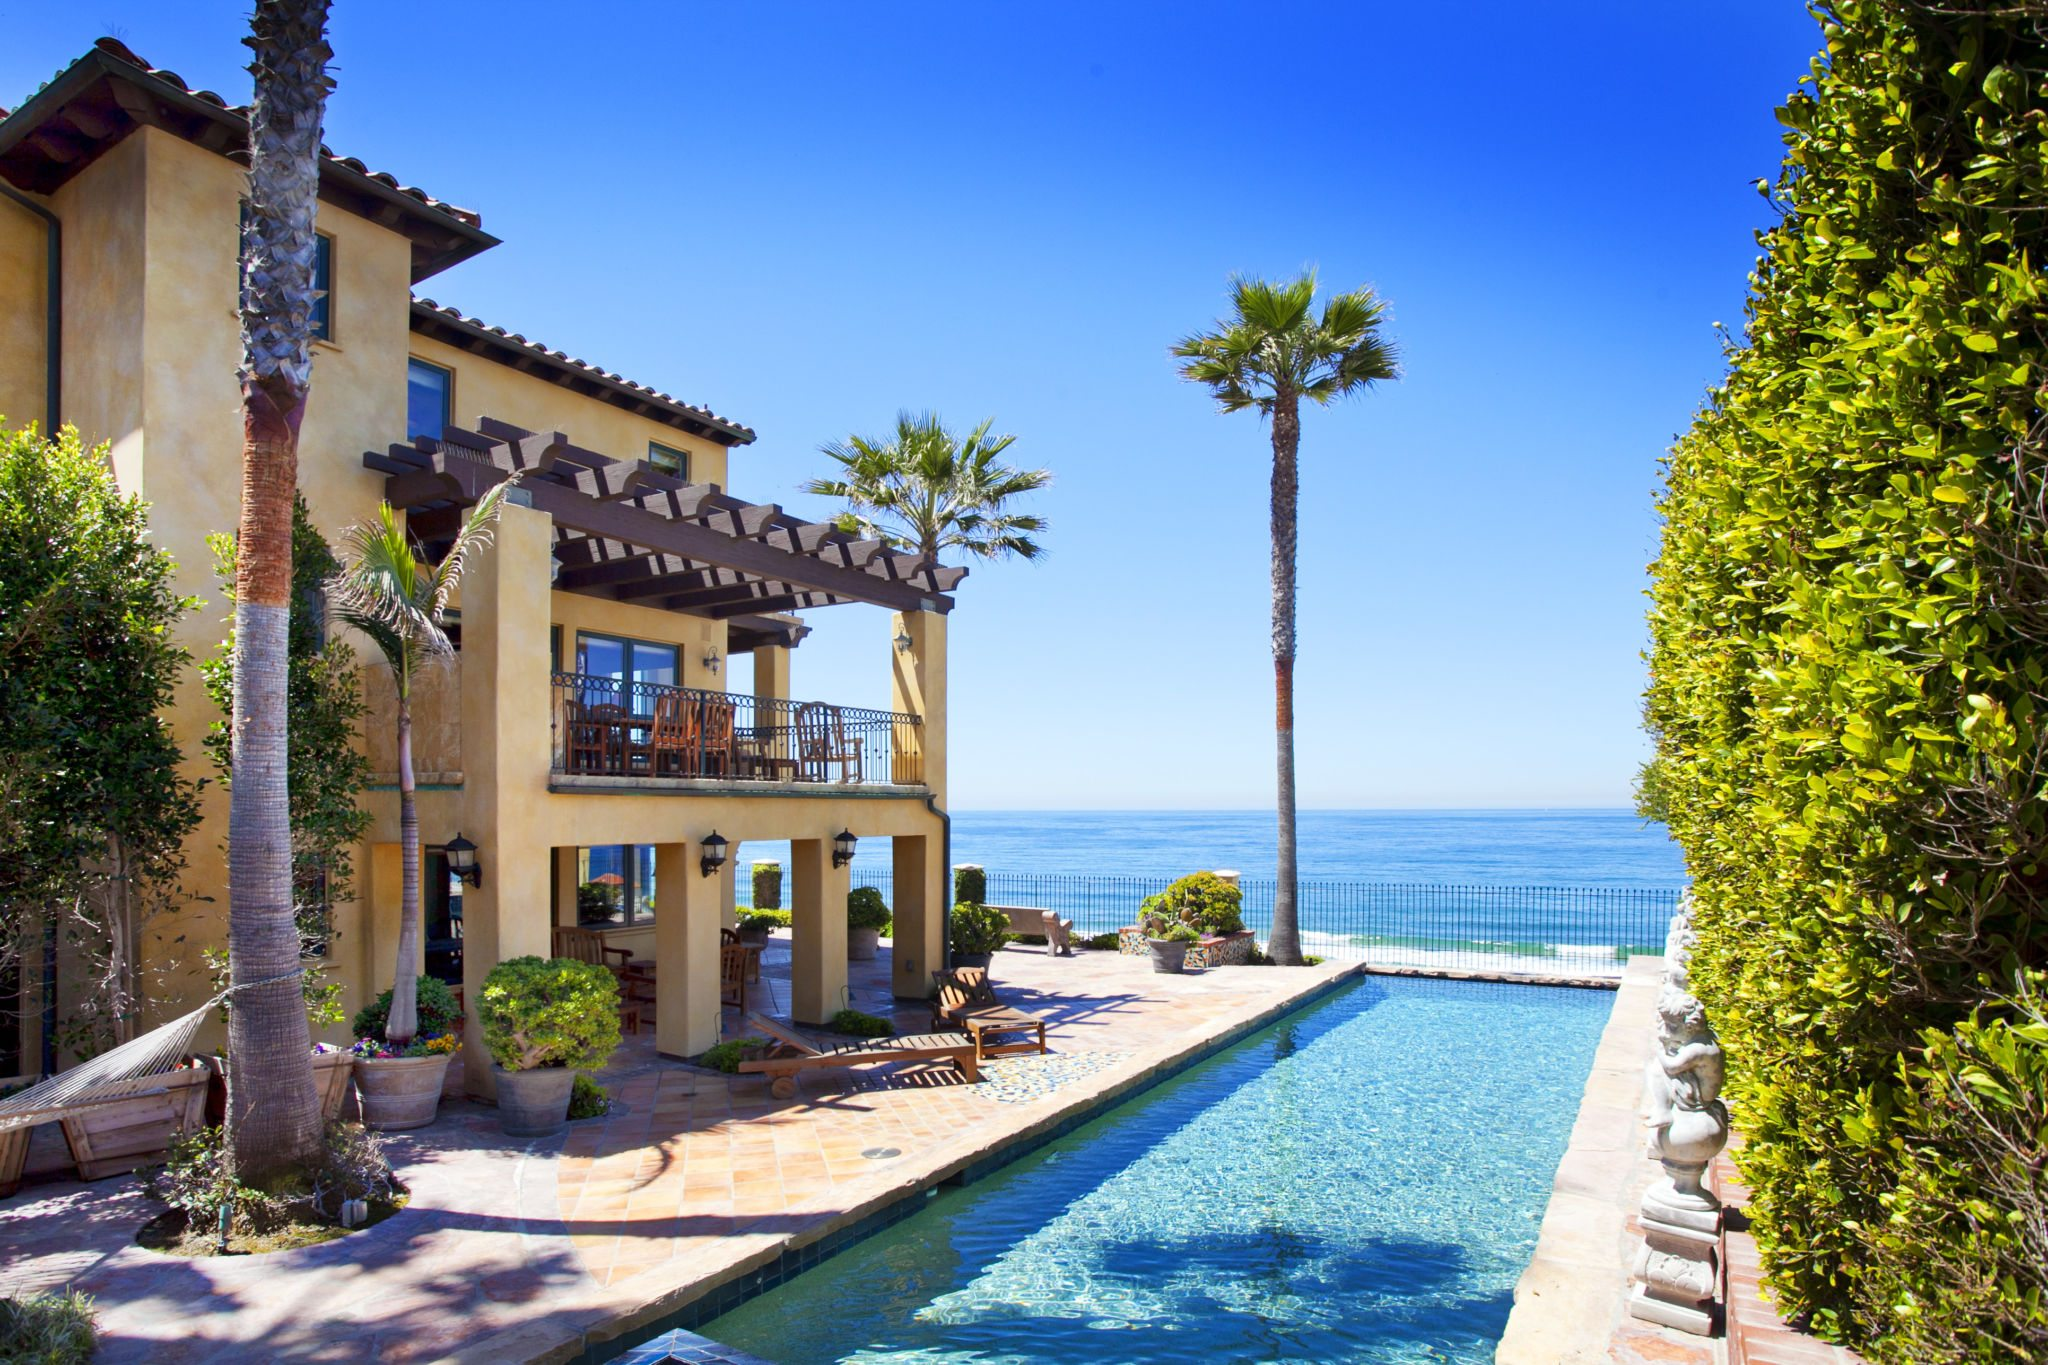 Extraordinary home of the week redondo beach spanish for Spanish style homes for sale near me